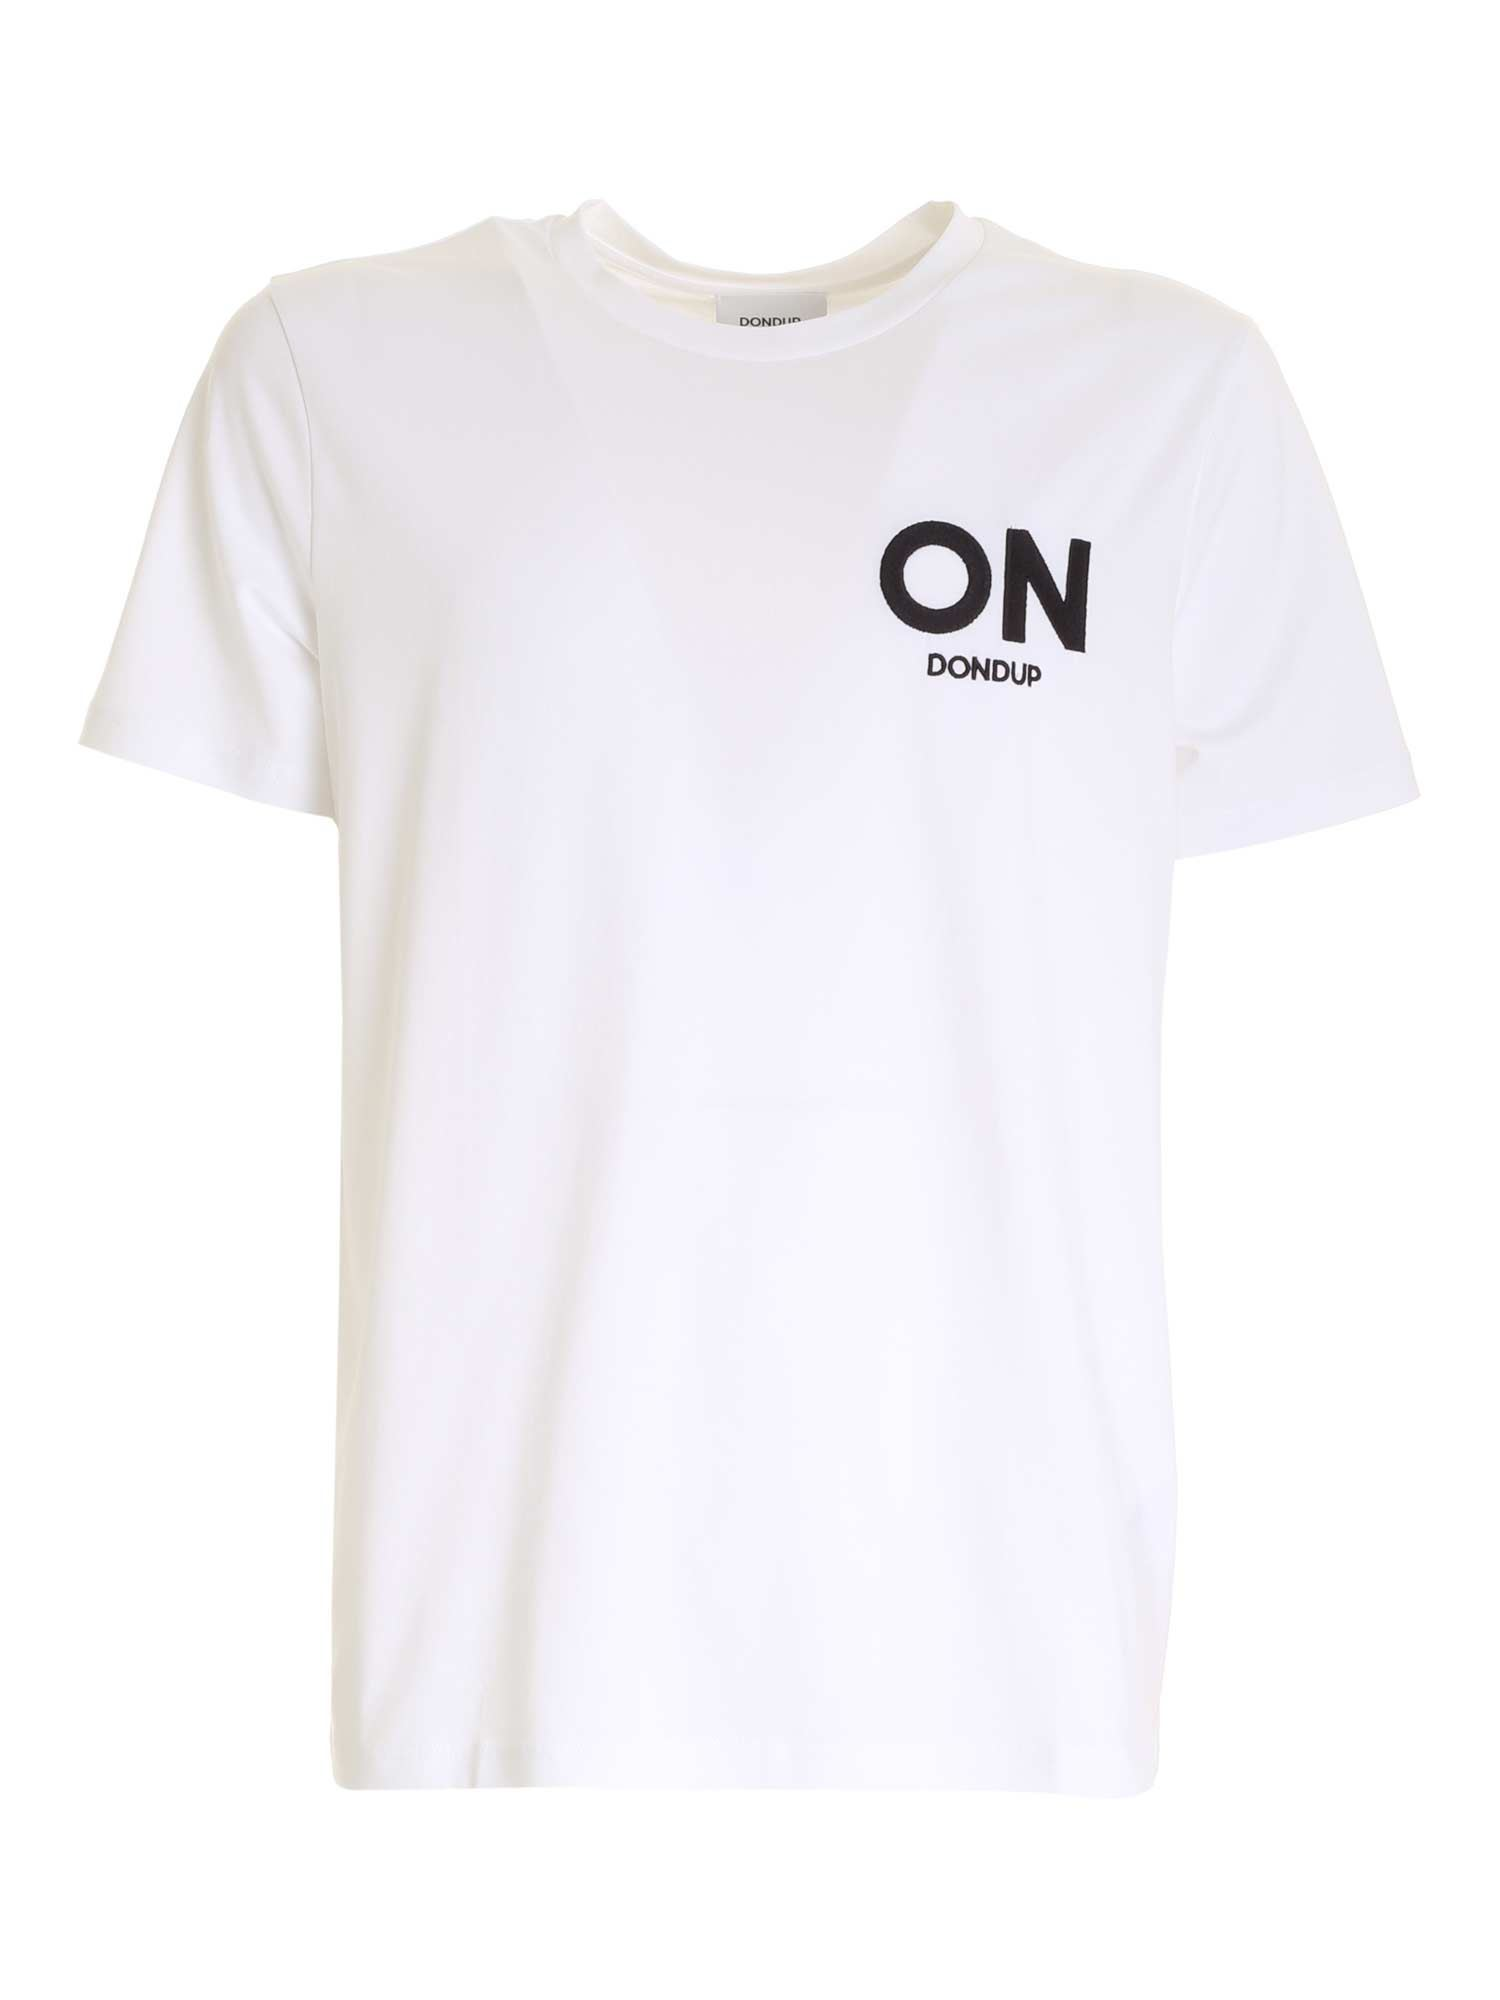 Dondup EMBROIDERY T-SHIRT IN WHITE